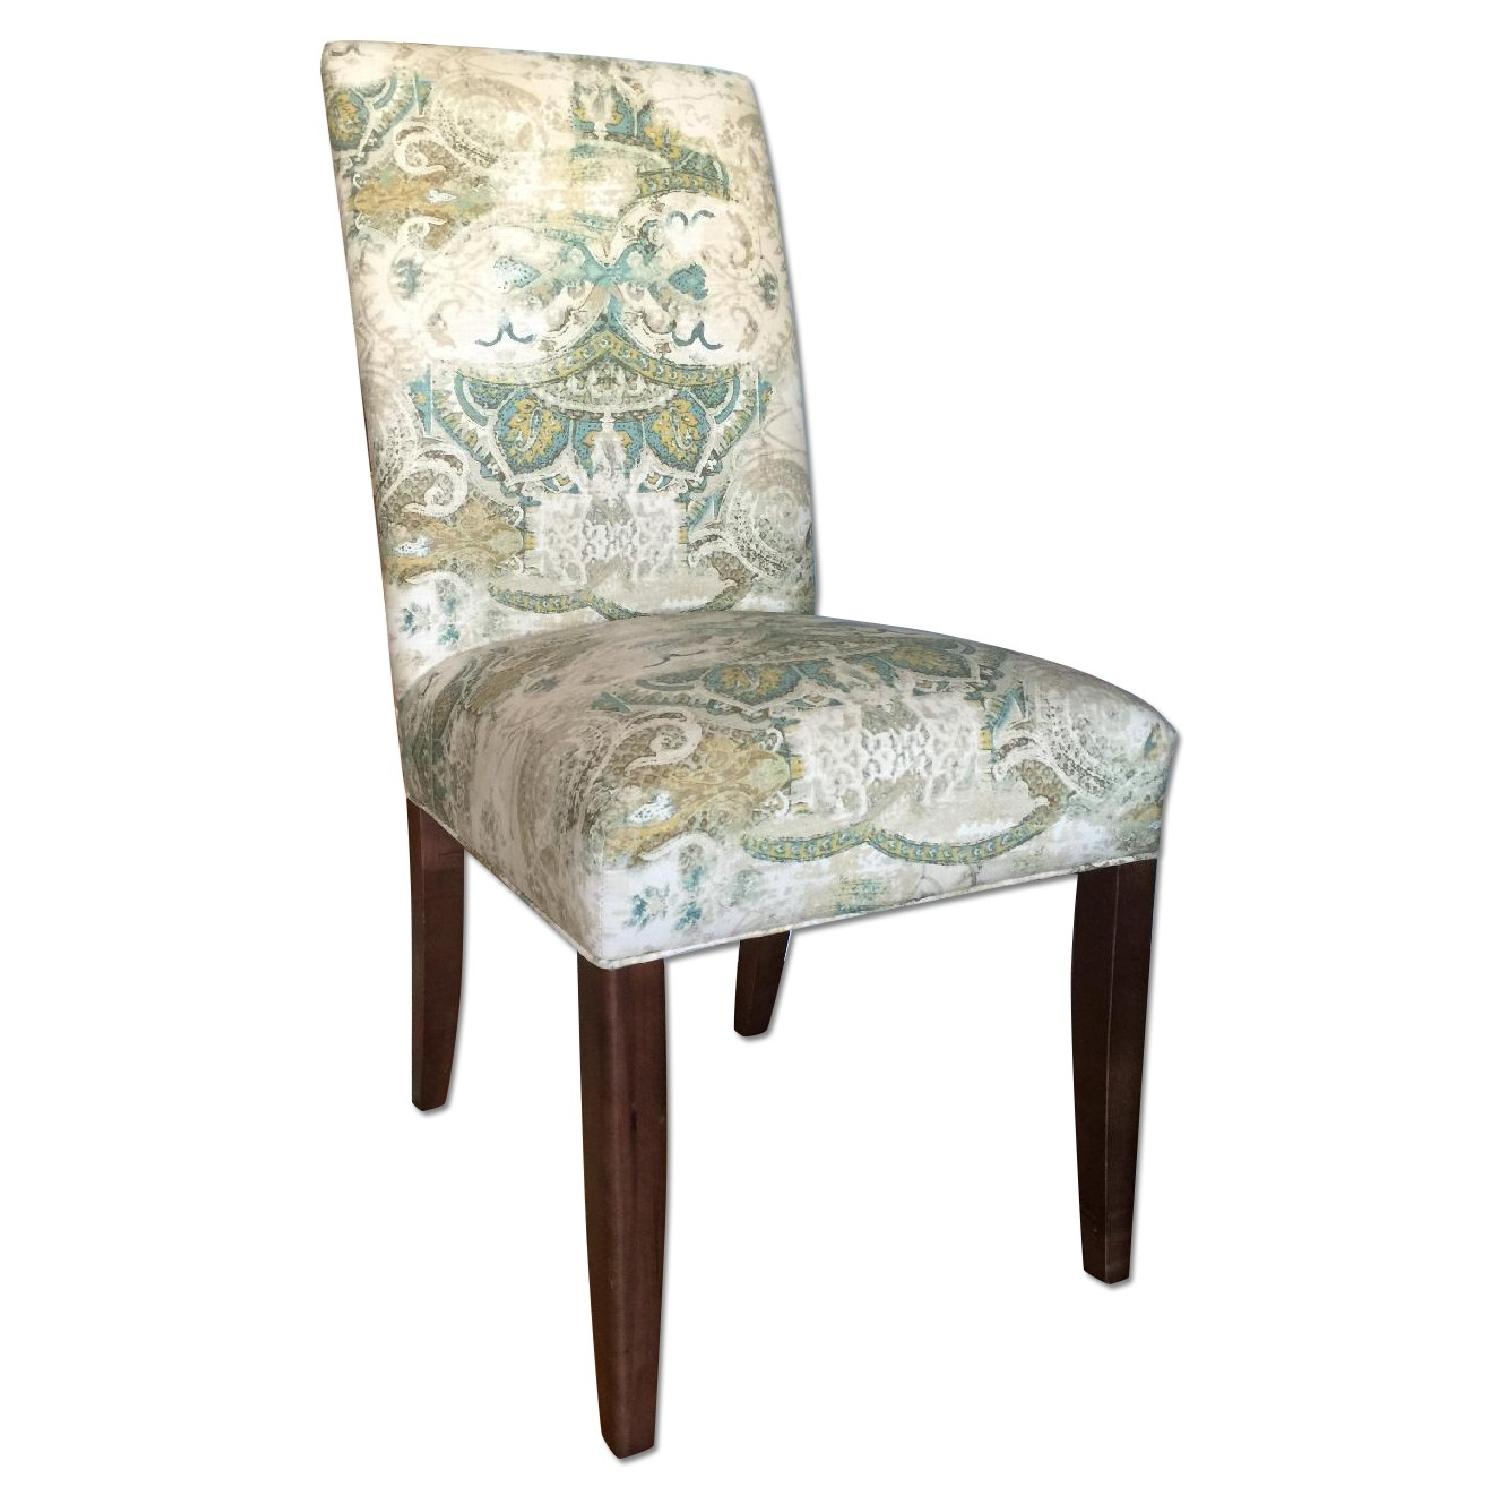 ABC Carpet and Home High Back Upholstered Dining Chairs - image-0